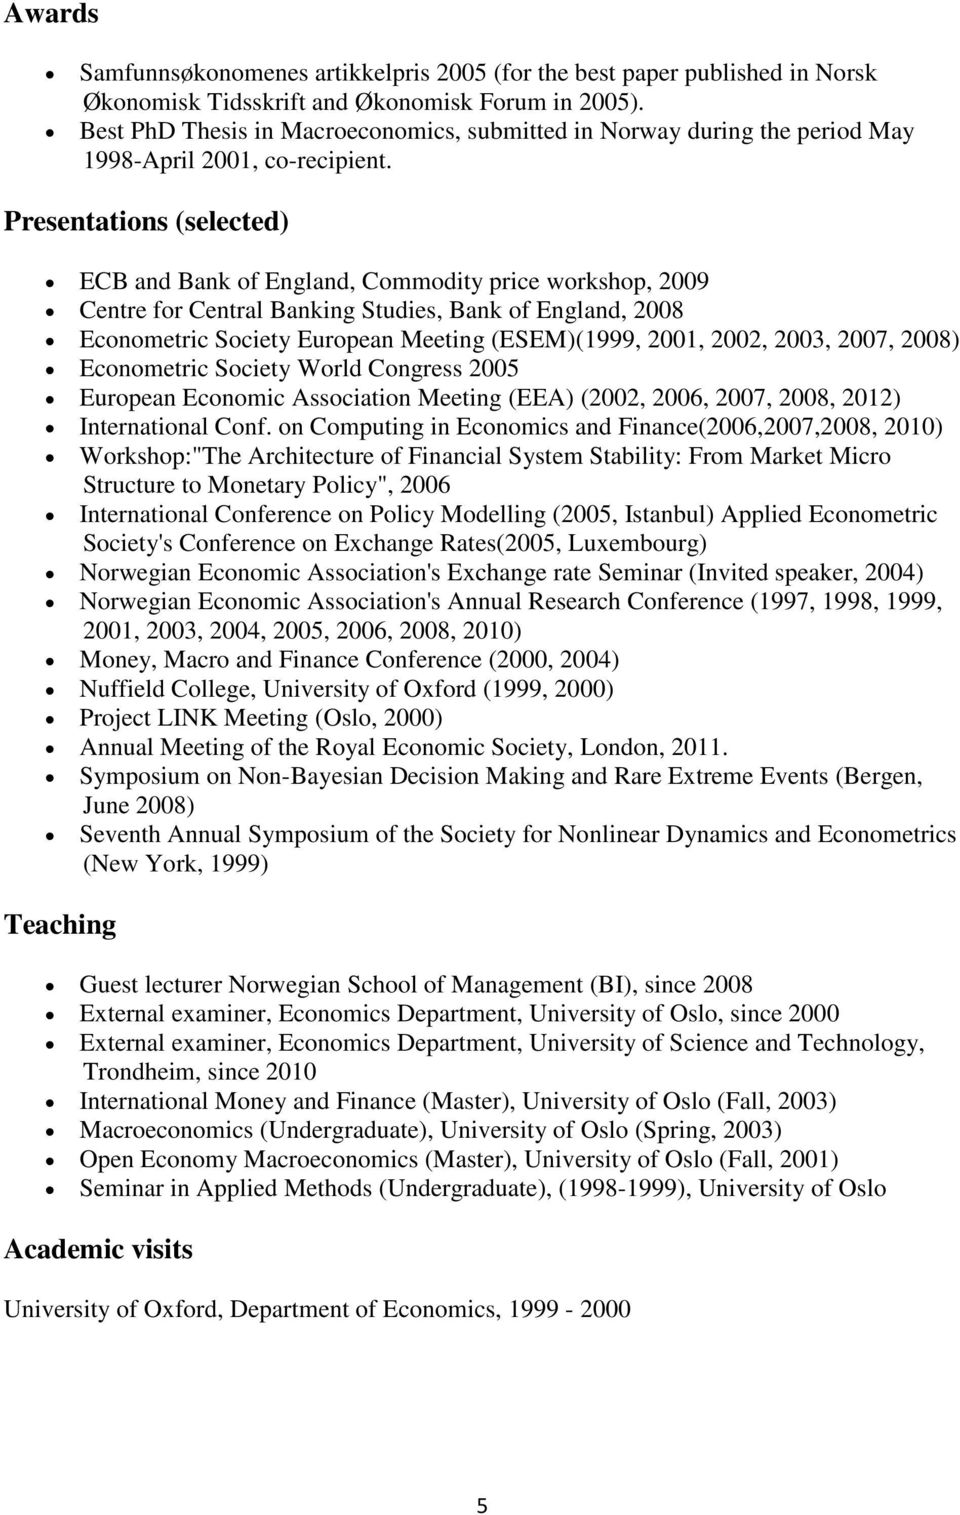 Presentations (selected) ECB and Bank of England, Commodity price workshop, 2009 Centre for Central Banking Studies, Bank of England, 2008 Econometric Society European Meeting (ESEM)(1999, 2001,